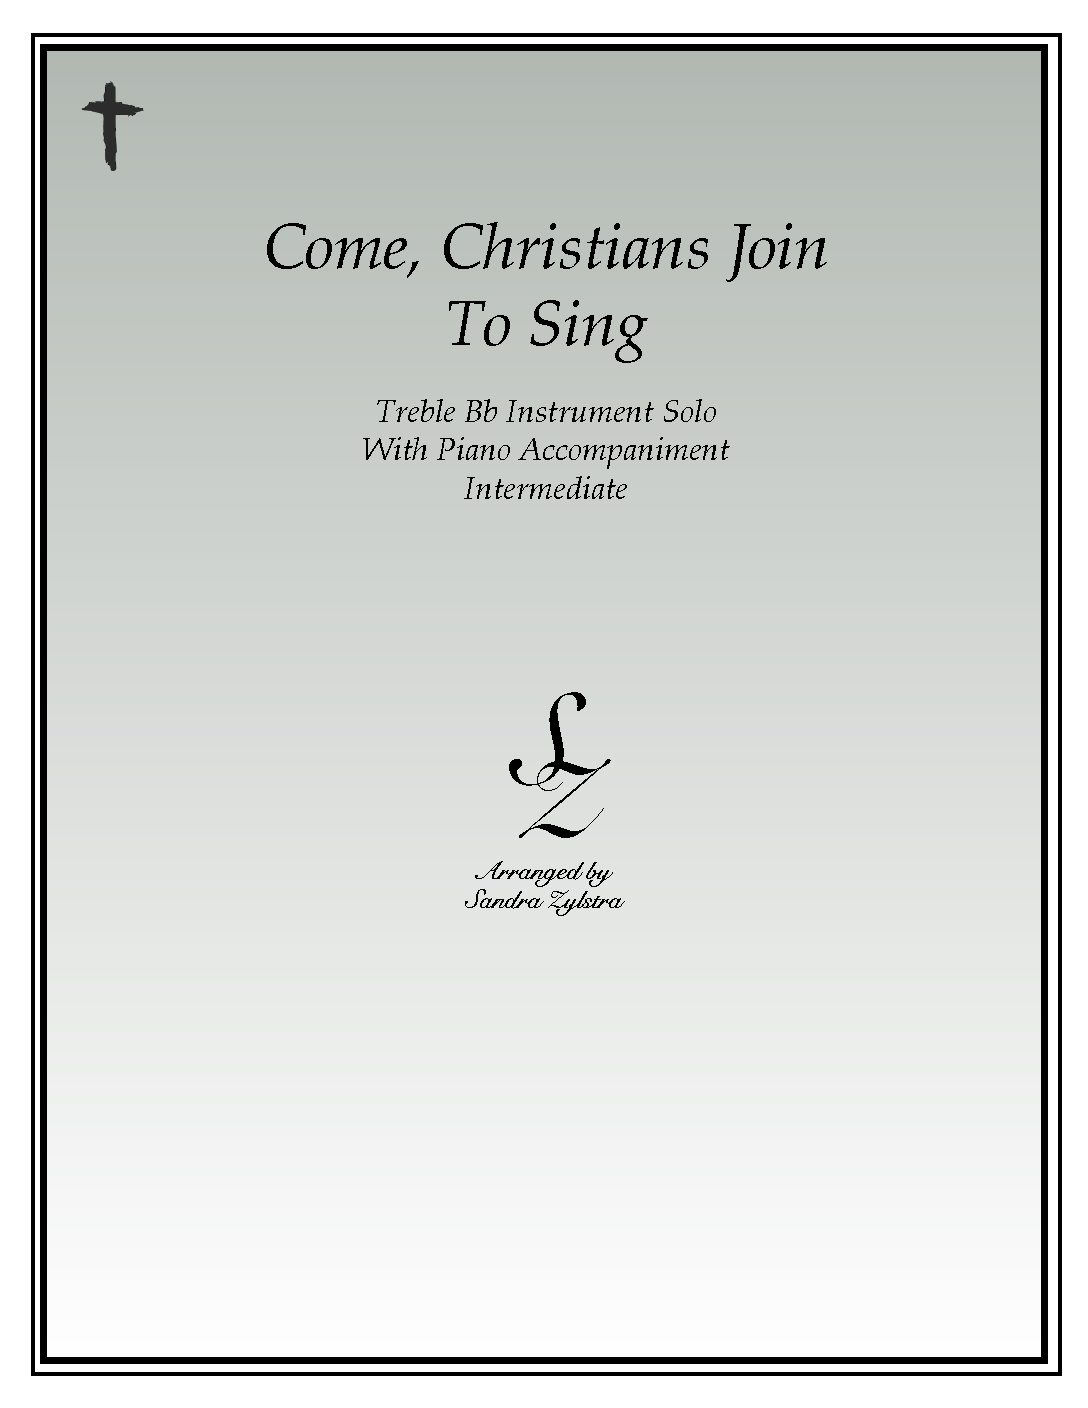 Come, Christians Join To Sing -Treble Bb Instrument Solo